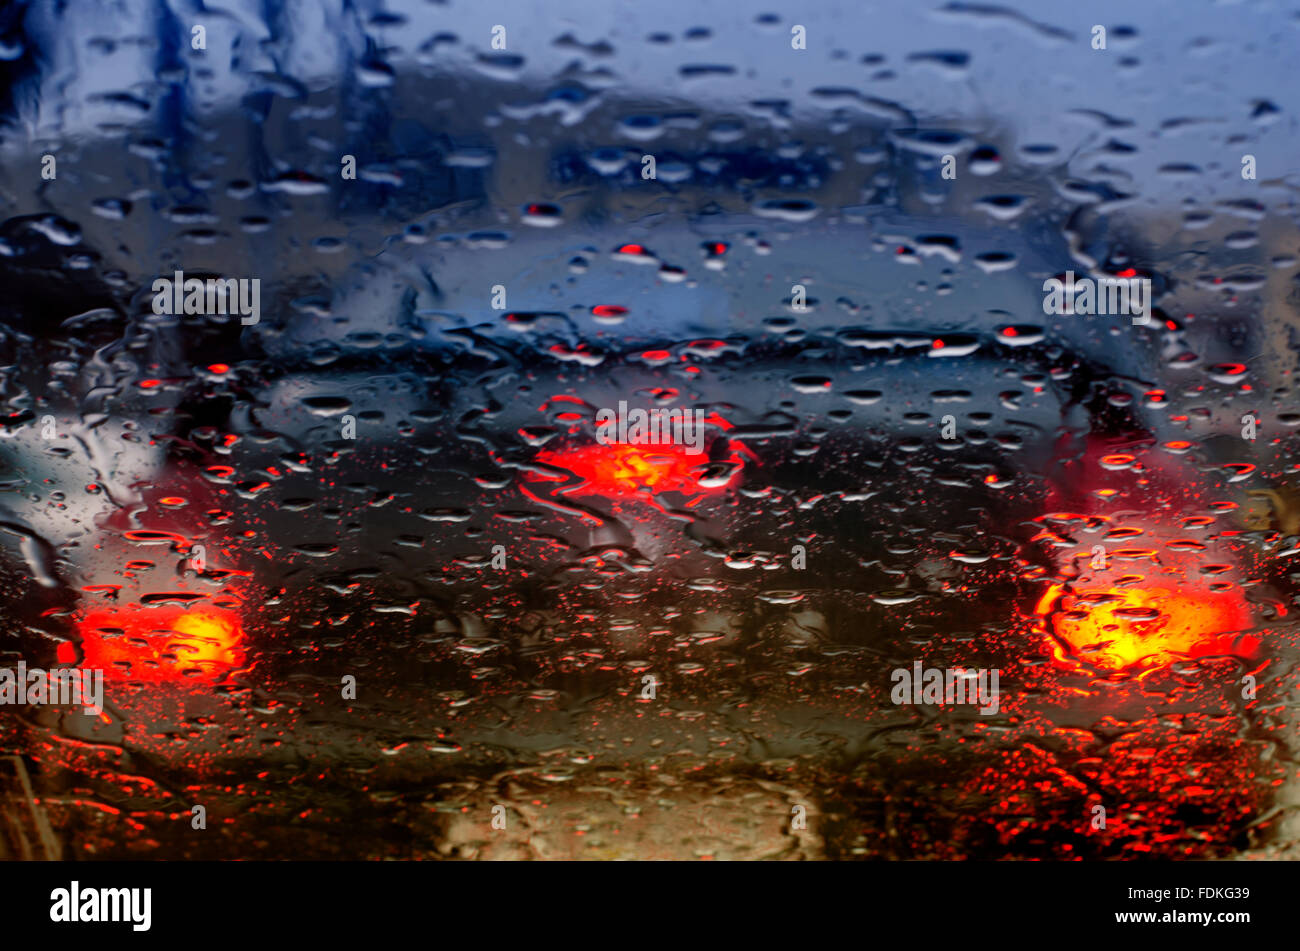 Taillights of a car seen through windscreen on a rainy day - Stock Image